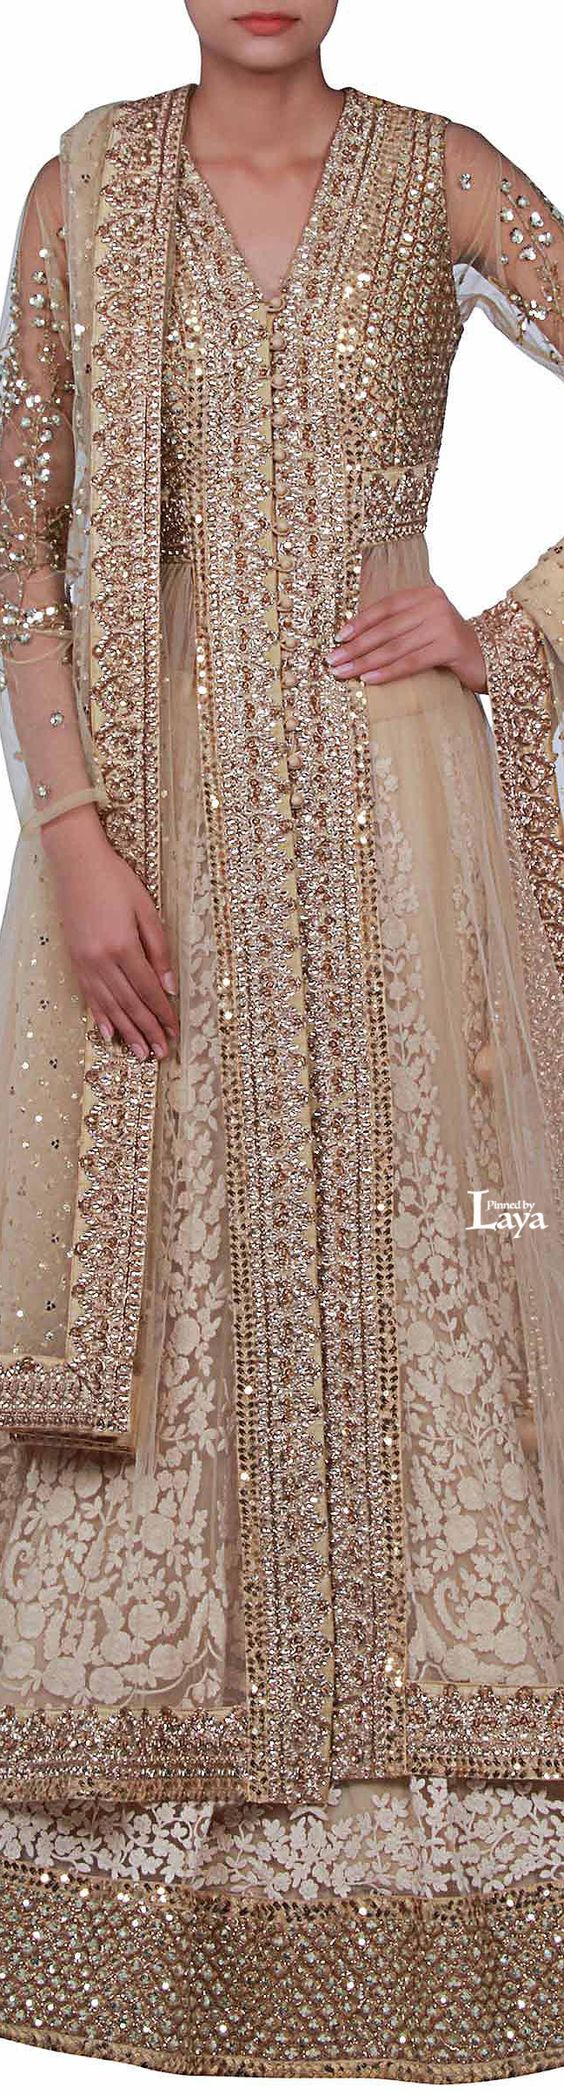 Latest Party Wear & Fancy Wedding Frock Designs Collection 2016-2017 (29)